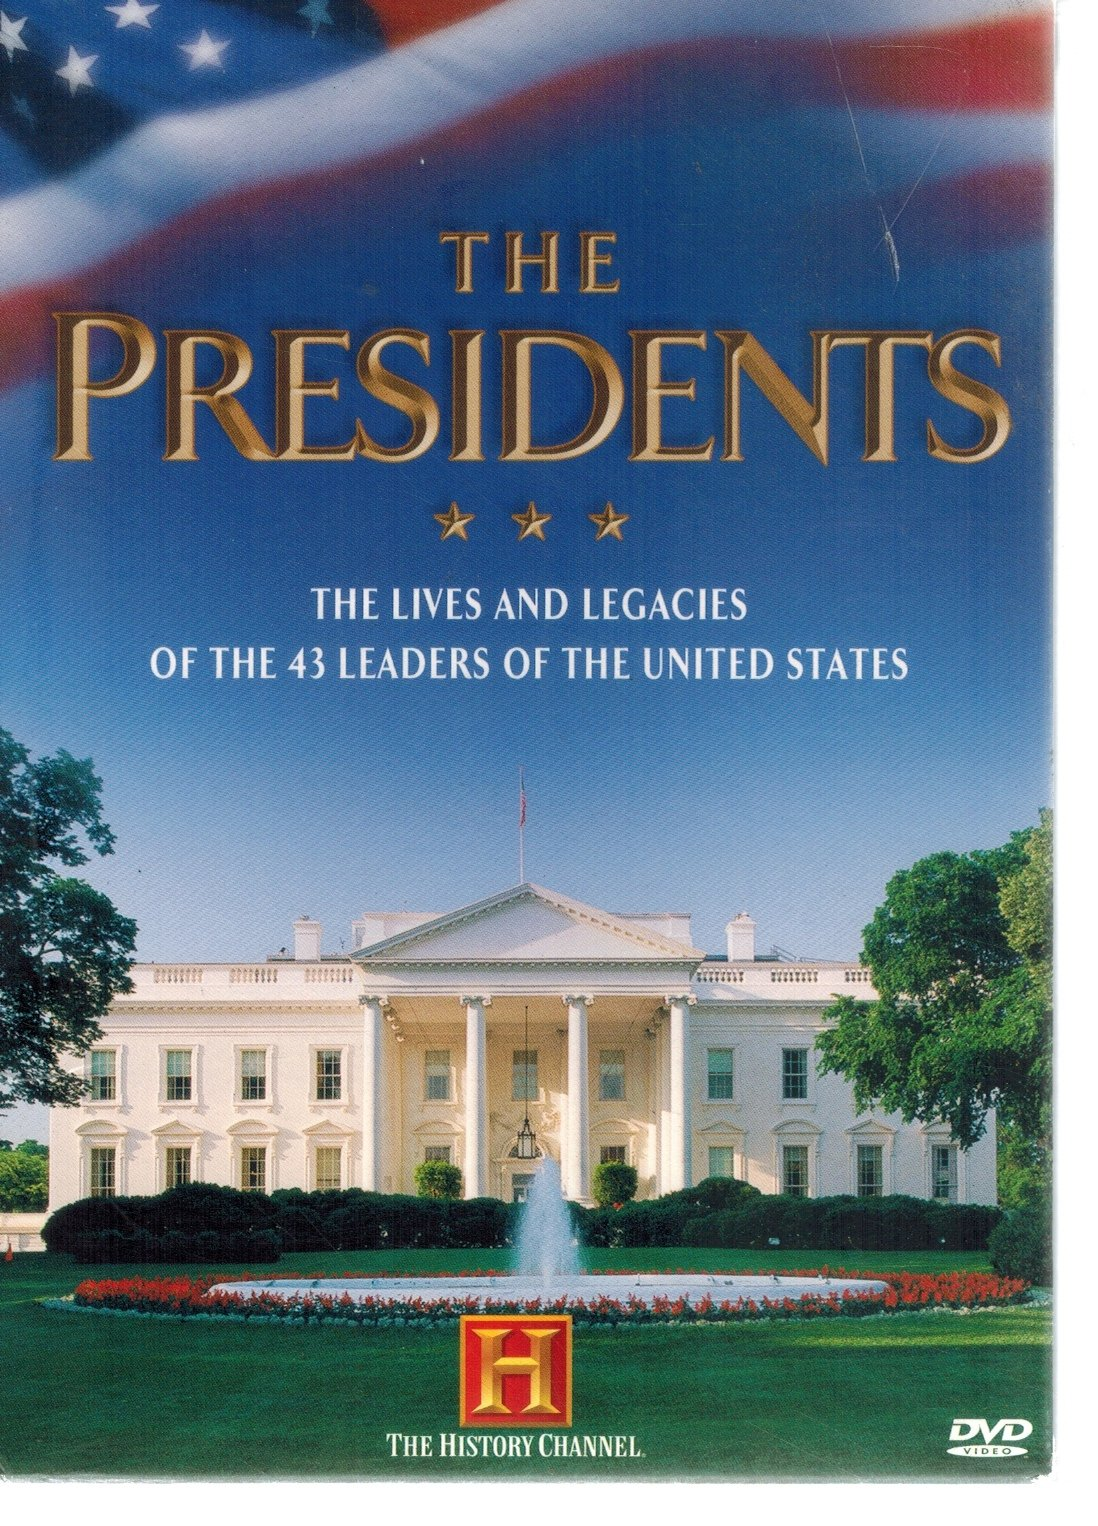 The Presidents  The Lives and Legacies of the 43 Leaders of the United  States  by History Channel